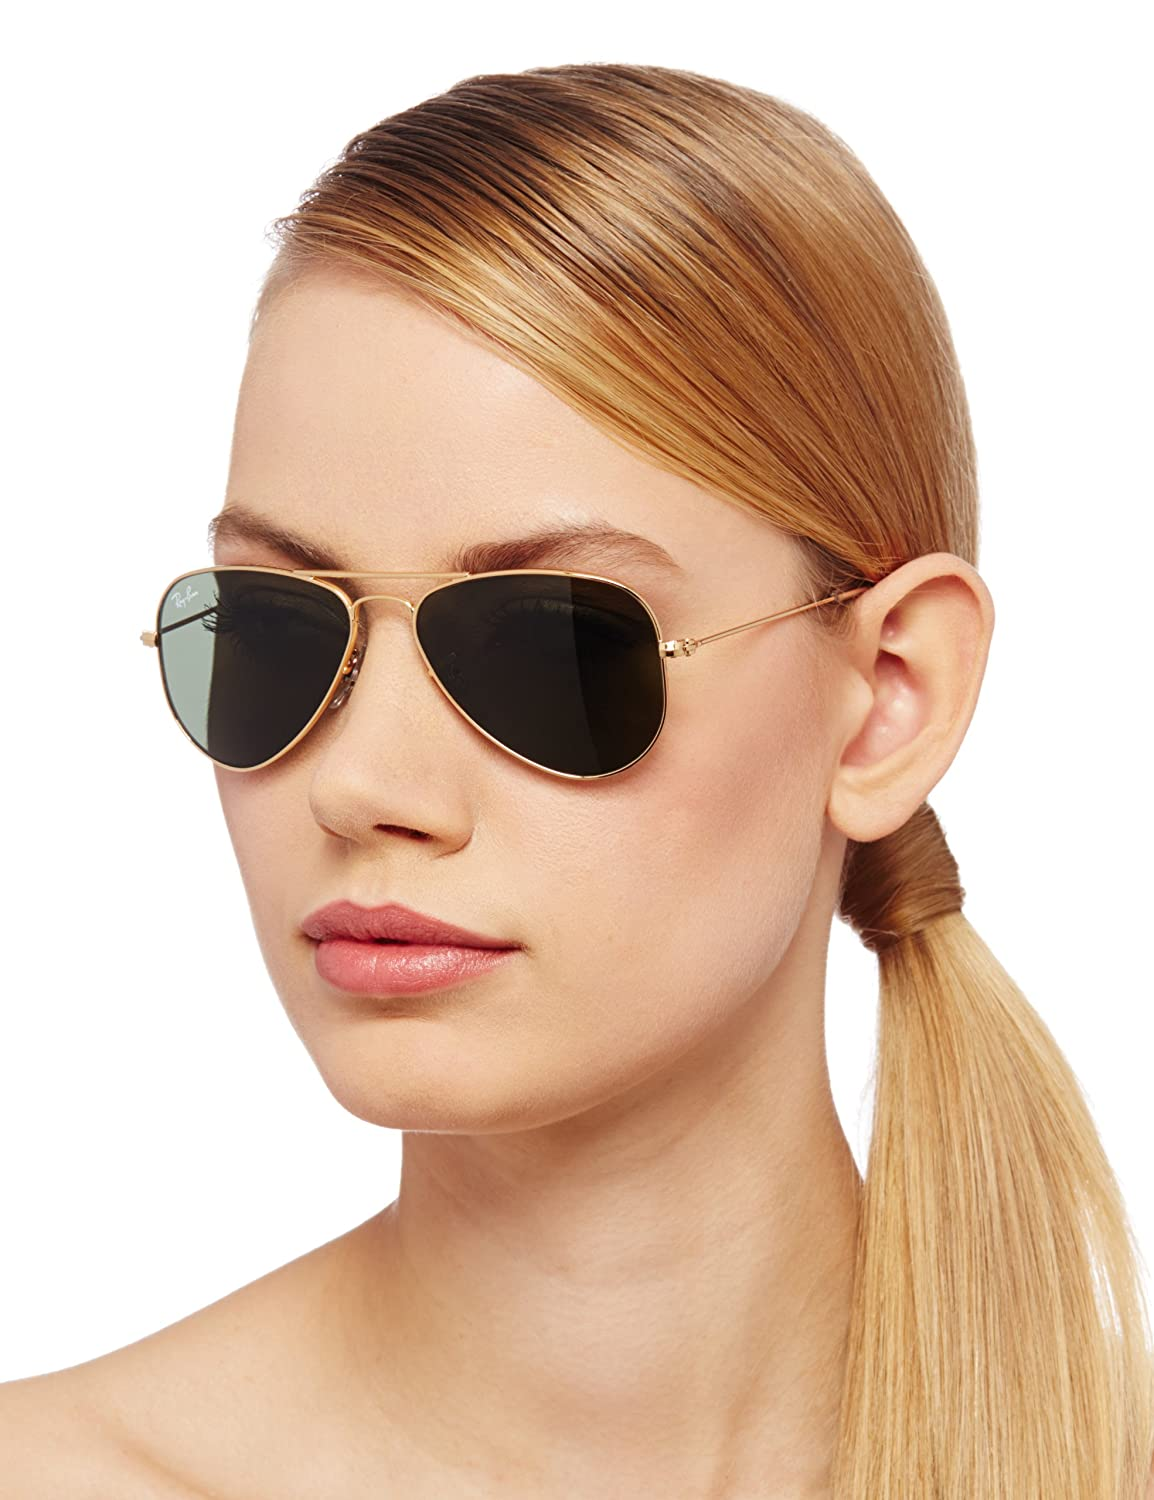 ray ban aviator sunglasses for small faces  ray ban men's gradient aviator rb3044 l0207 52 gold aviator sunglasses: ray ban: amazon.ca: clothing & accessories